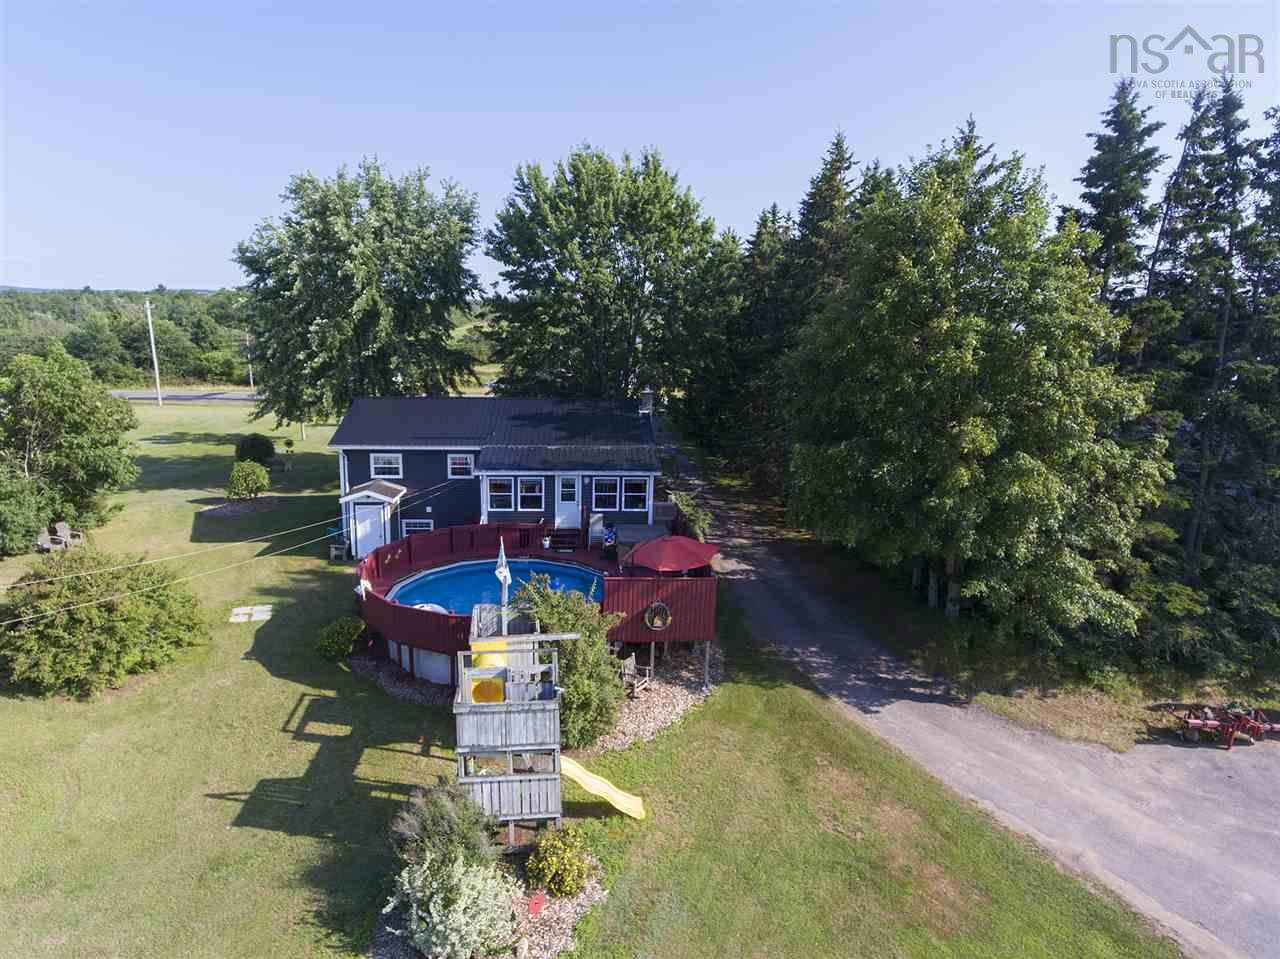 A wonderful opportunity to own your own family business in the heart of the Annapolis Valley. Ideally located with access to the highway and quick commute to the town of Berwick with all the amenities you'll need. Excellent class 1 soils with ponds to help with the irrigation and 35 workable acres. Offering a very comfortable primary residence with a sun room and pool. This home is well suited to family living and entertaining. Warehouse and office, shed, large container, 3 bedroom rental house, and a well established farmers market to sell your produce is also part of the package.